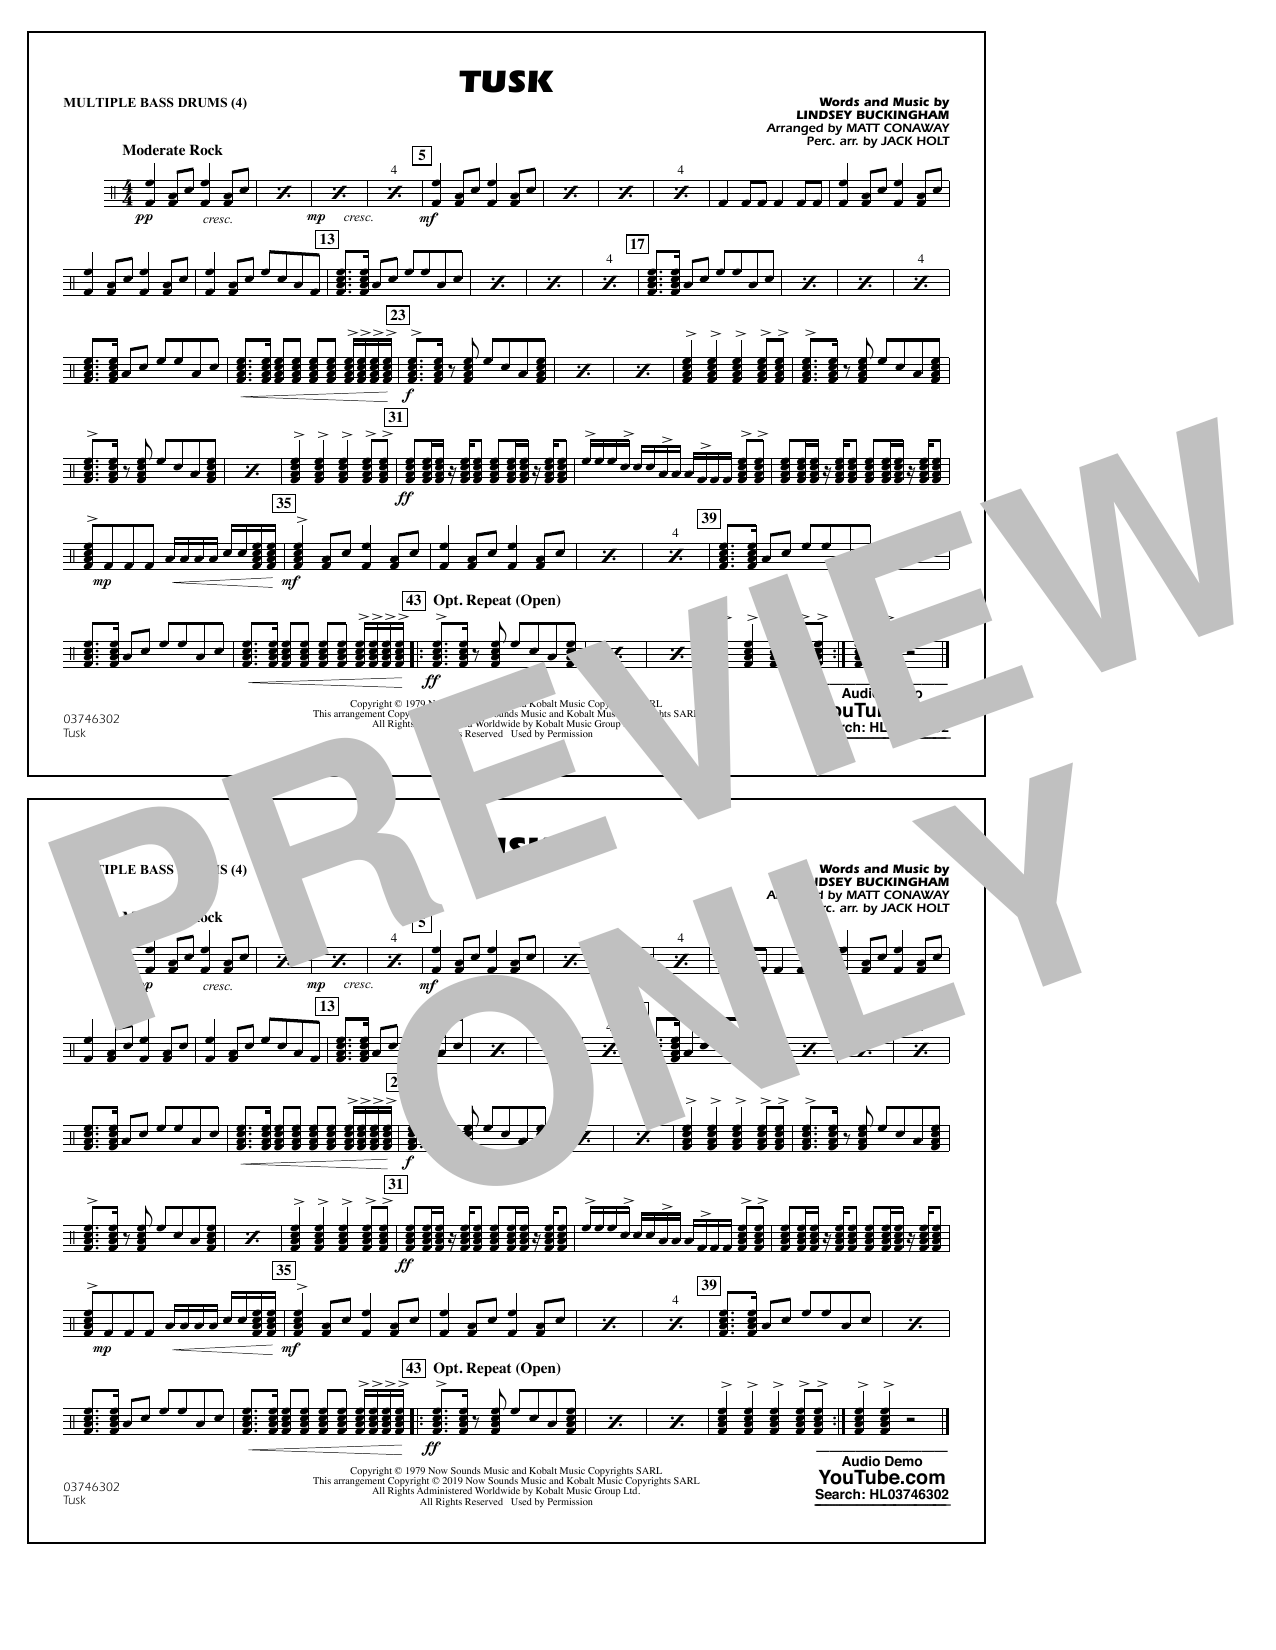 Fleetwood Mac Tusk (arr. Matt Conaway) - Multiple Bass Drums sheet music notes and chords